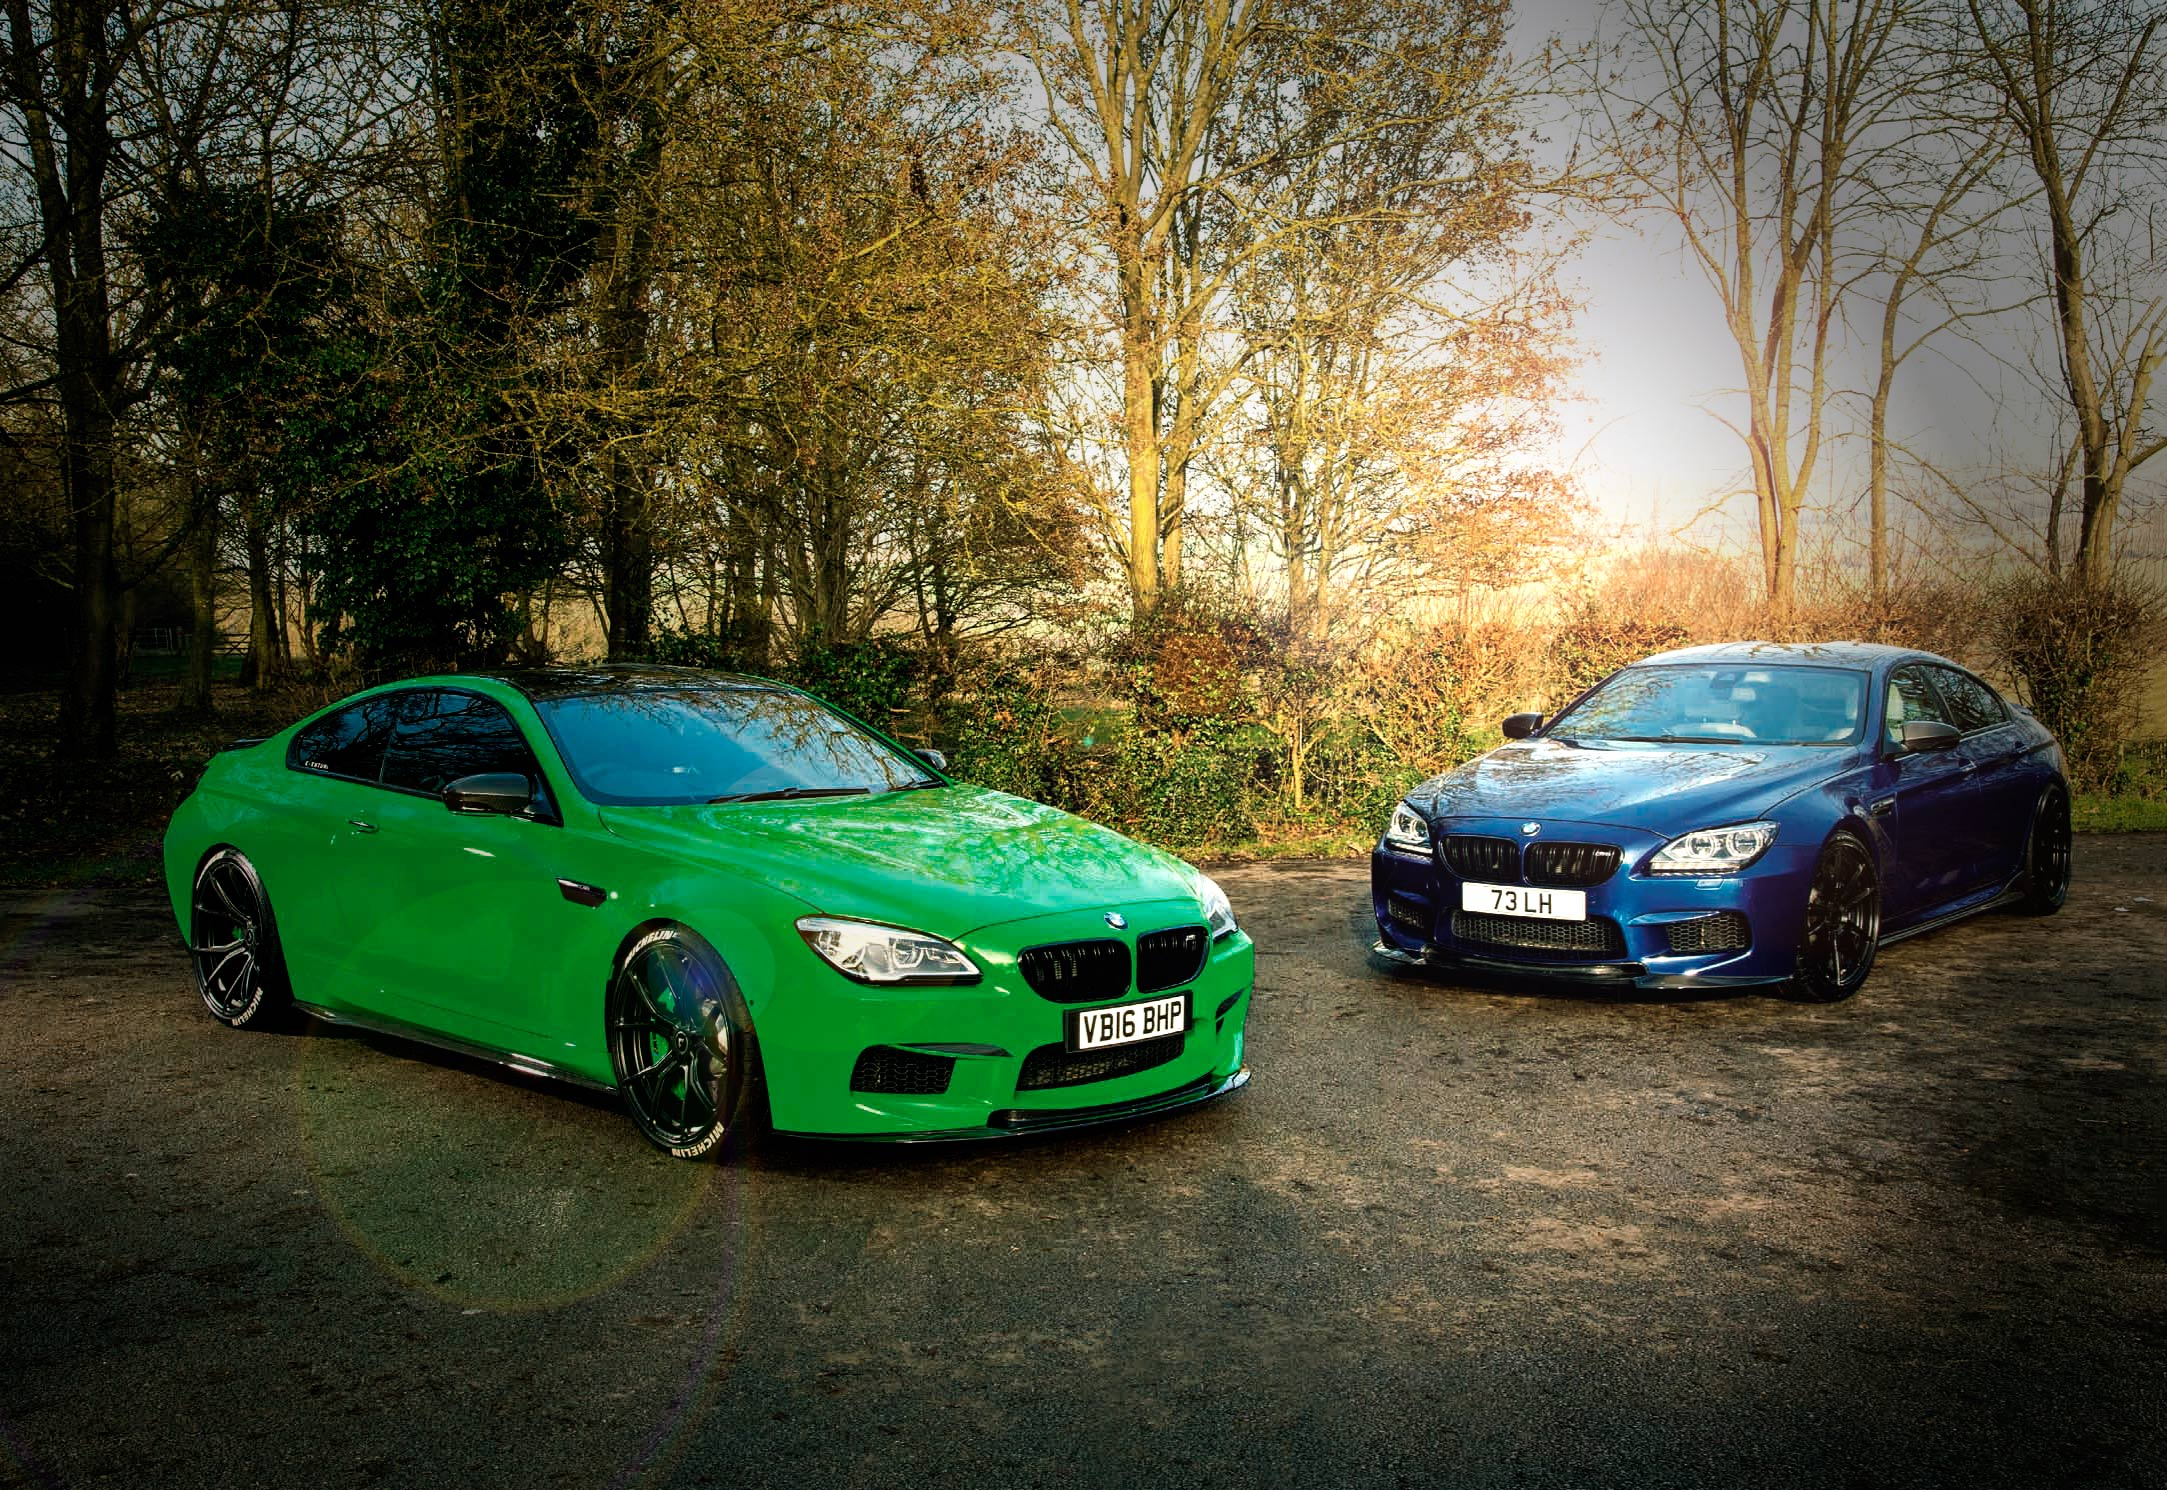 Bmw M6 Competition Evolve F13 Vs Bmw M6 Gran Coupe Evolve F06 730bhp Supercars Road Test Drive My Blogs Drive